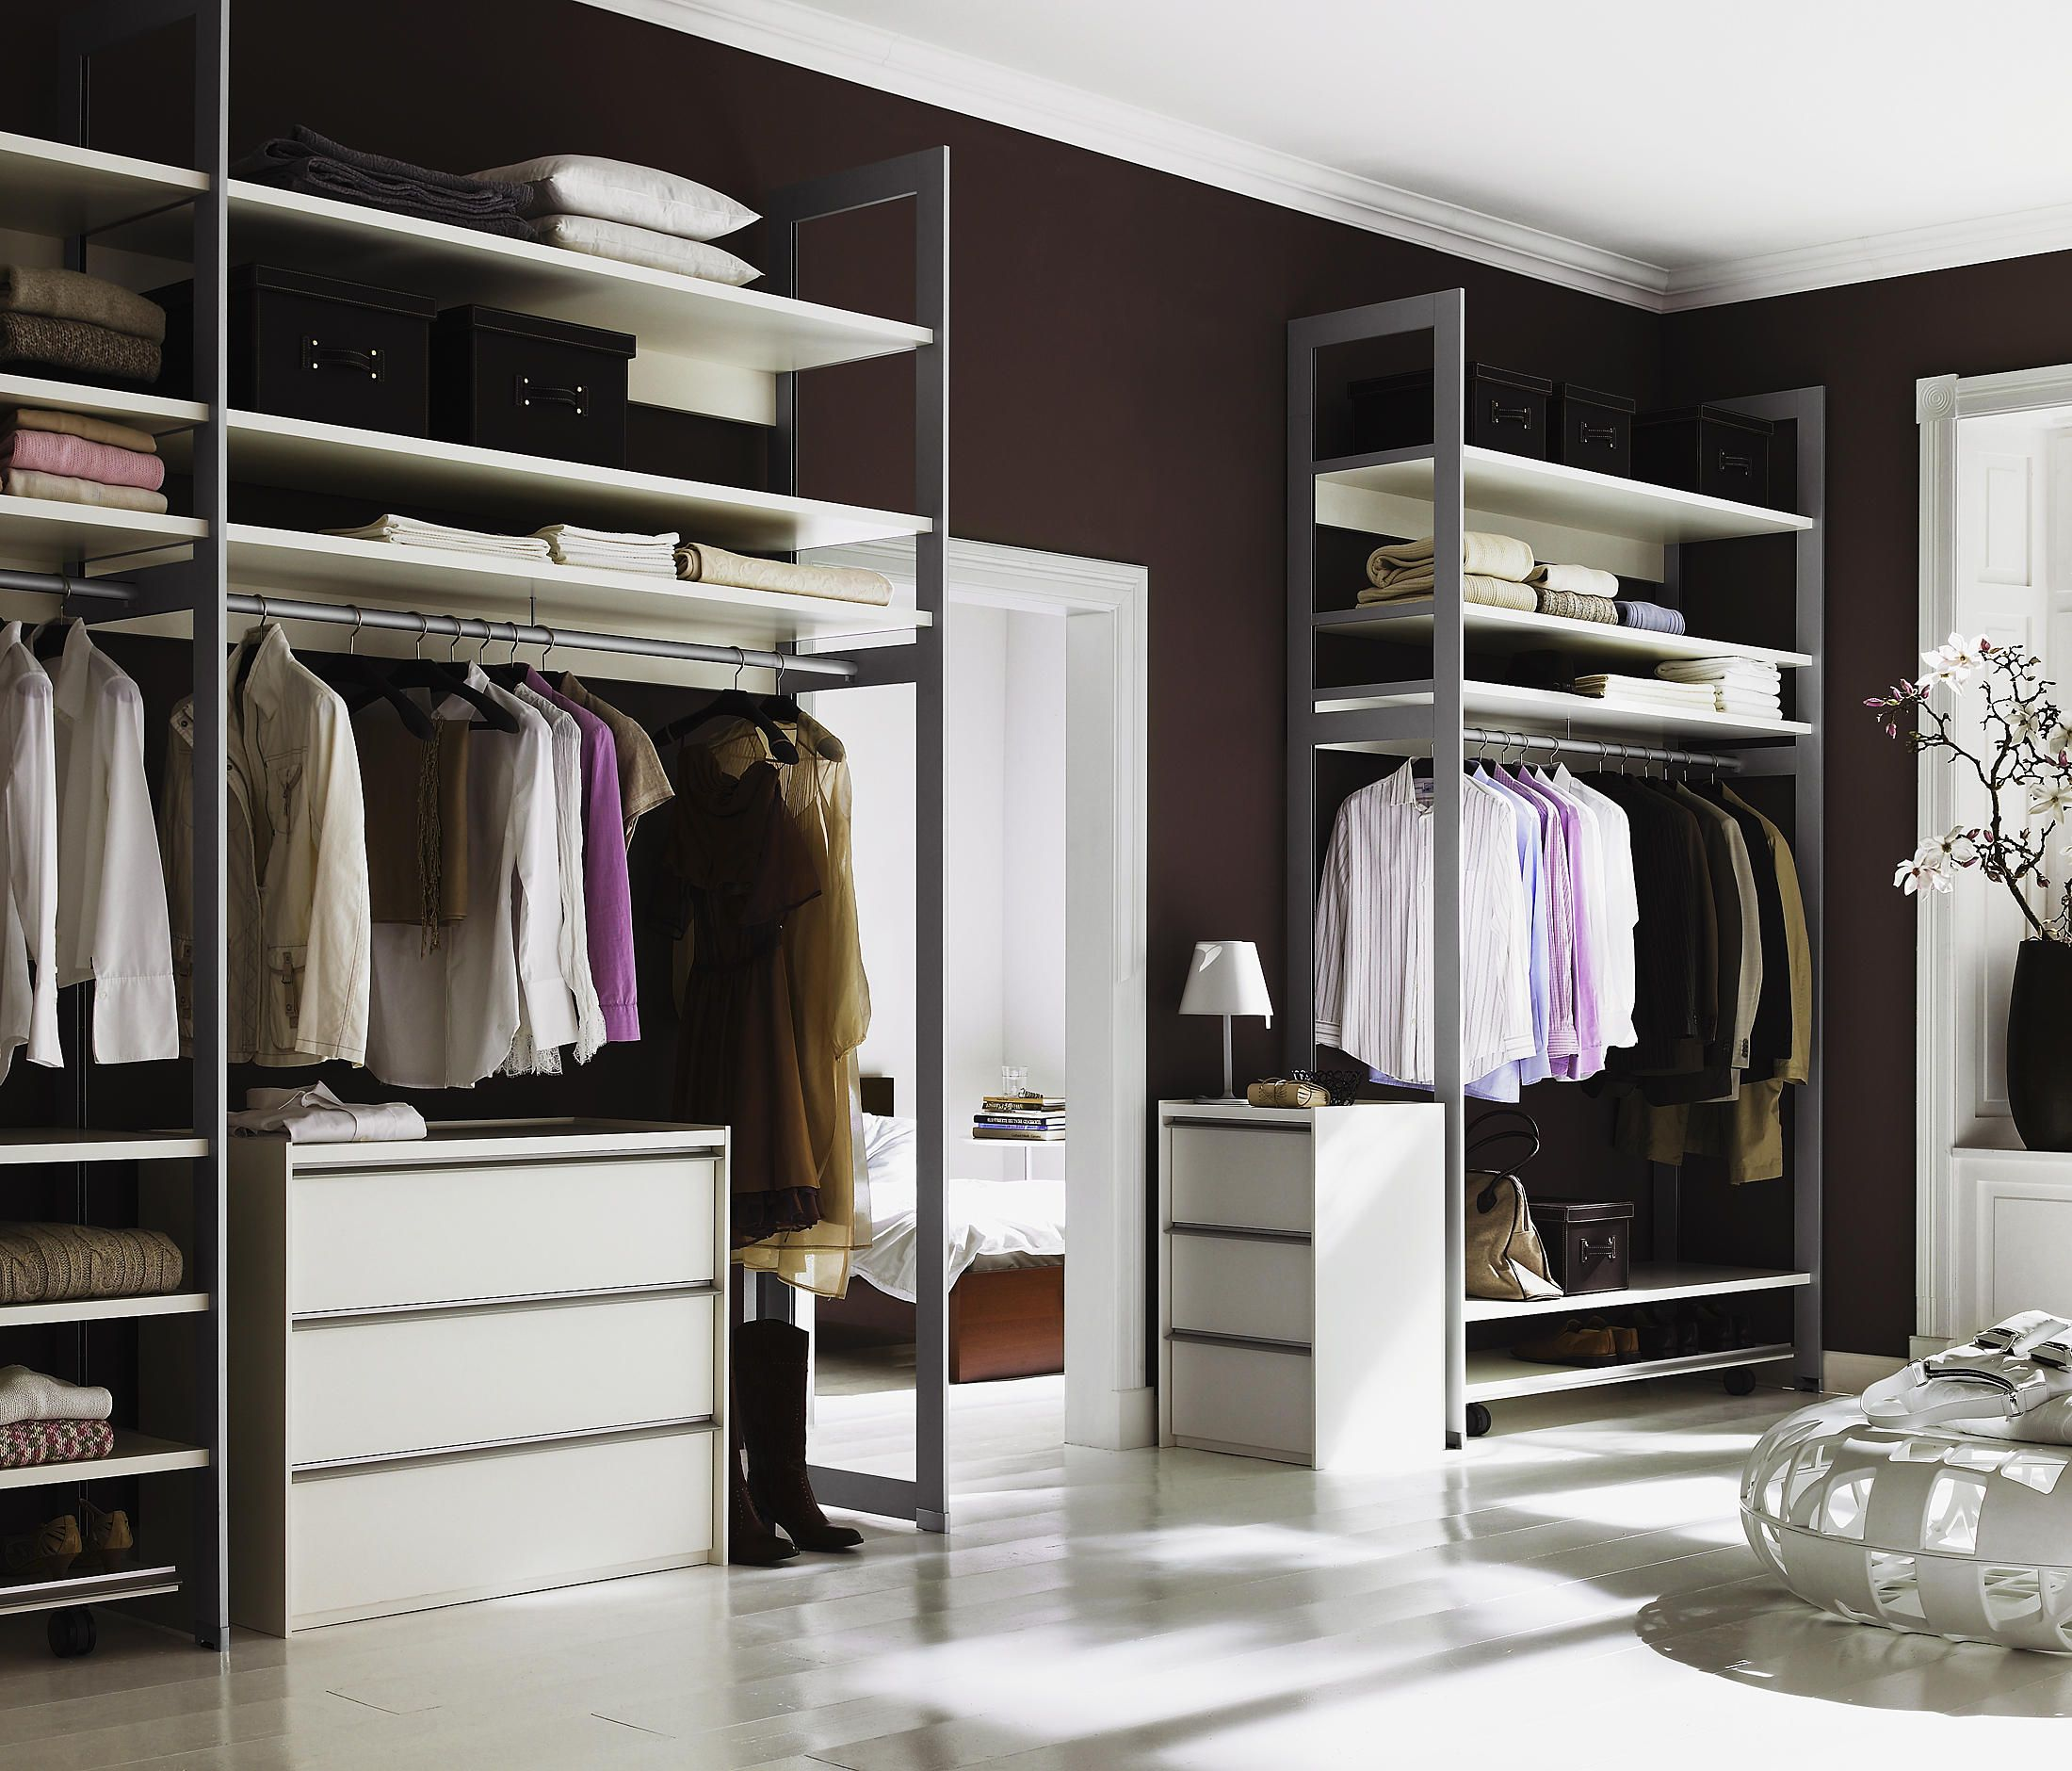 organizer organizers system storage tips systems closet inspiring ideas organization in for